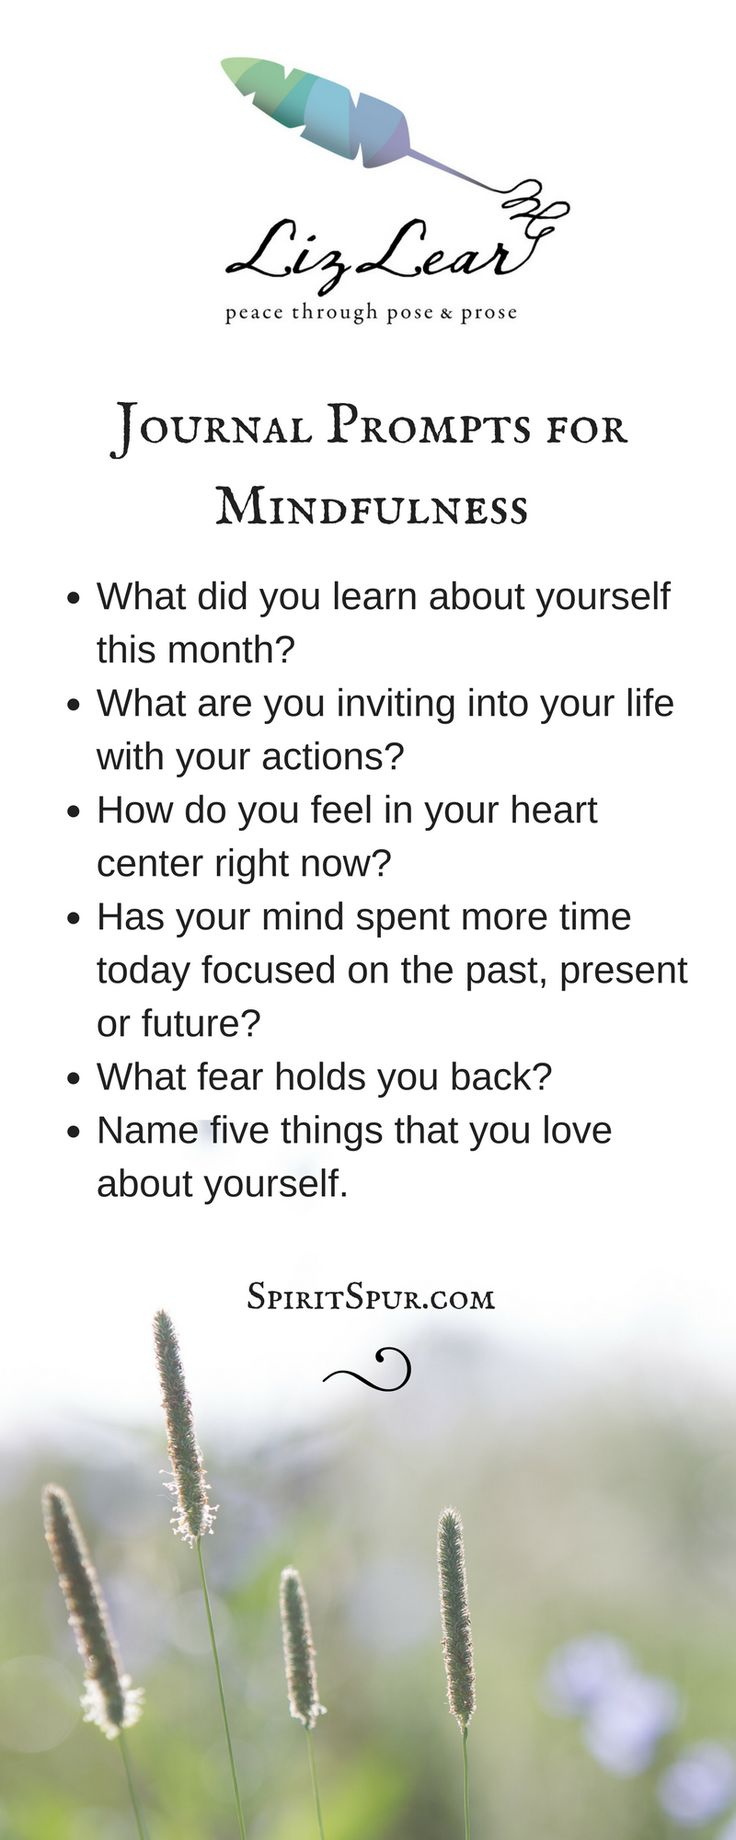 Yoga-inspired journal writing prompts from Liz Lear | Free Cultivate Contentment journal writing guide | SpiritSpur.com blog at the intersection of yoga mat and journal page